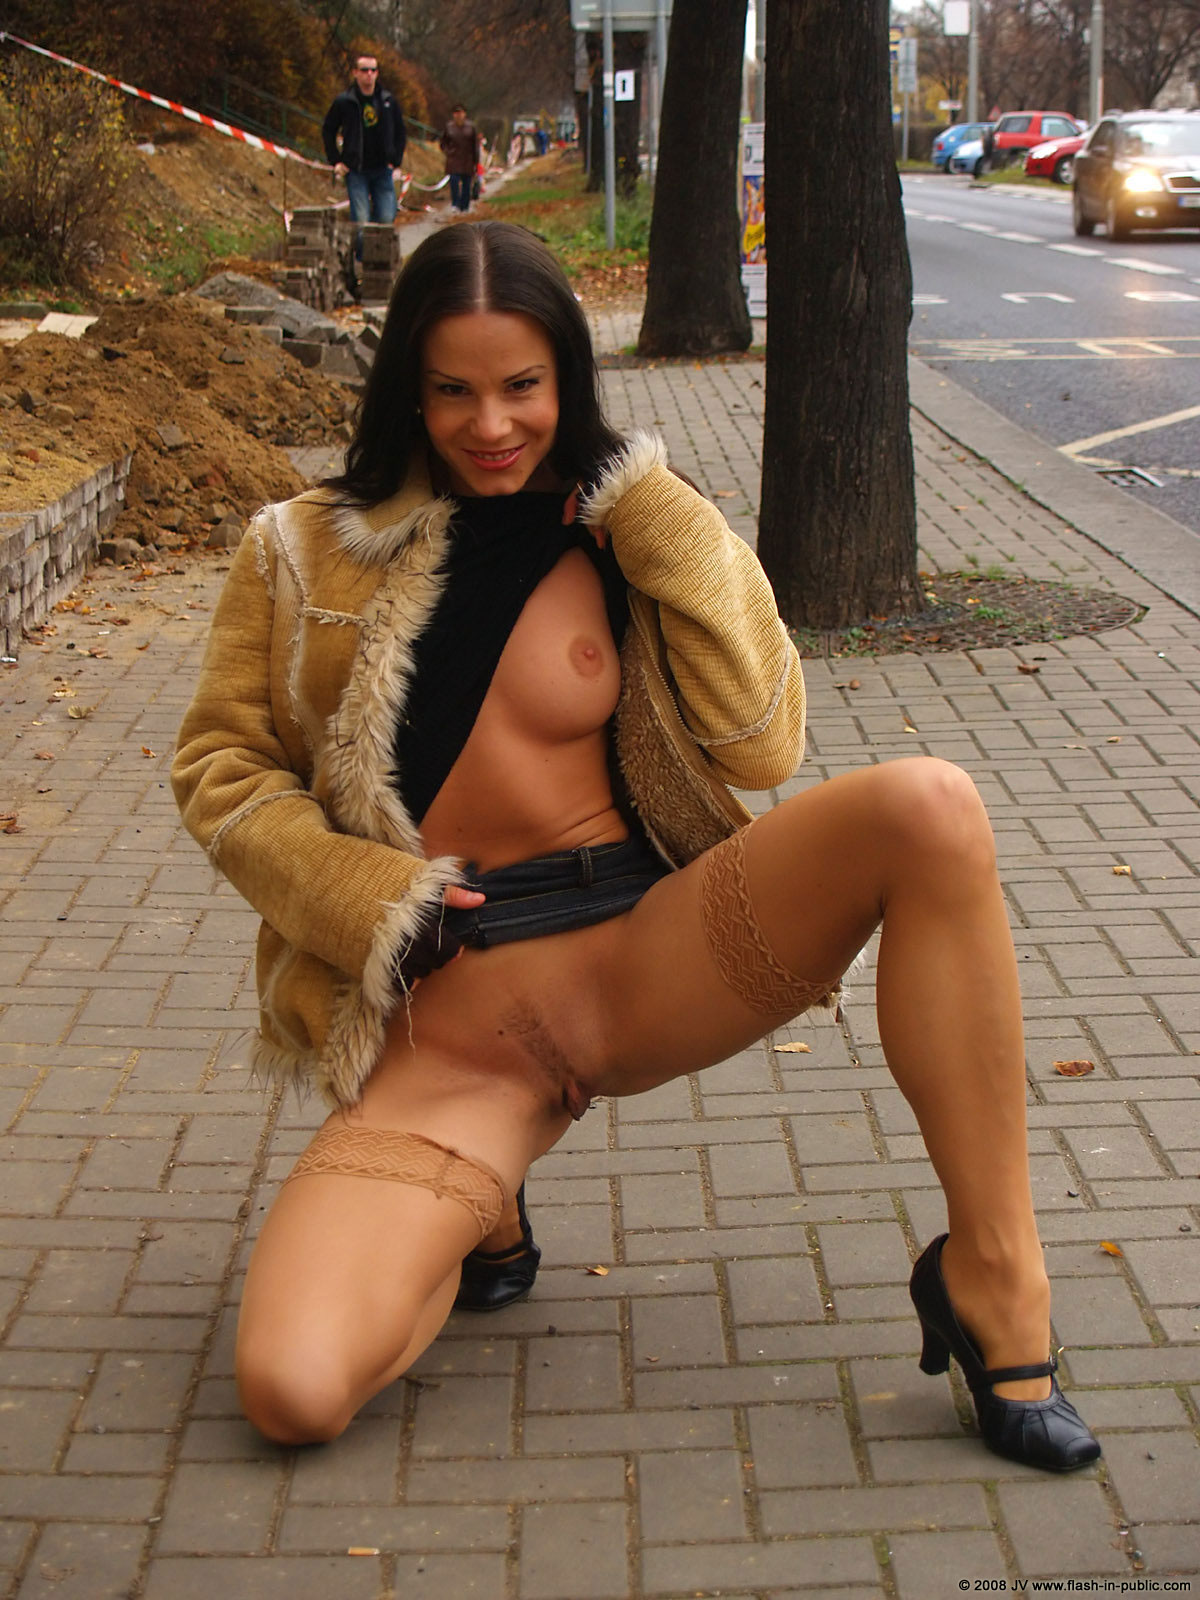 alexandra-g-bottomless-stockings-flash-in-public-10